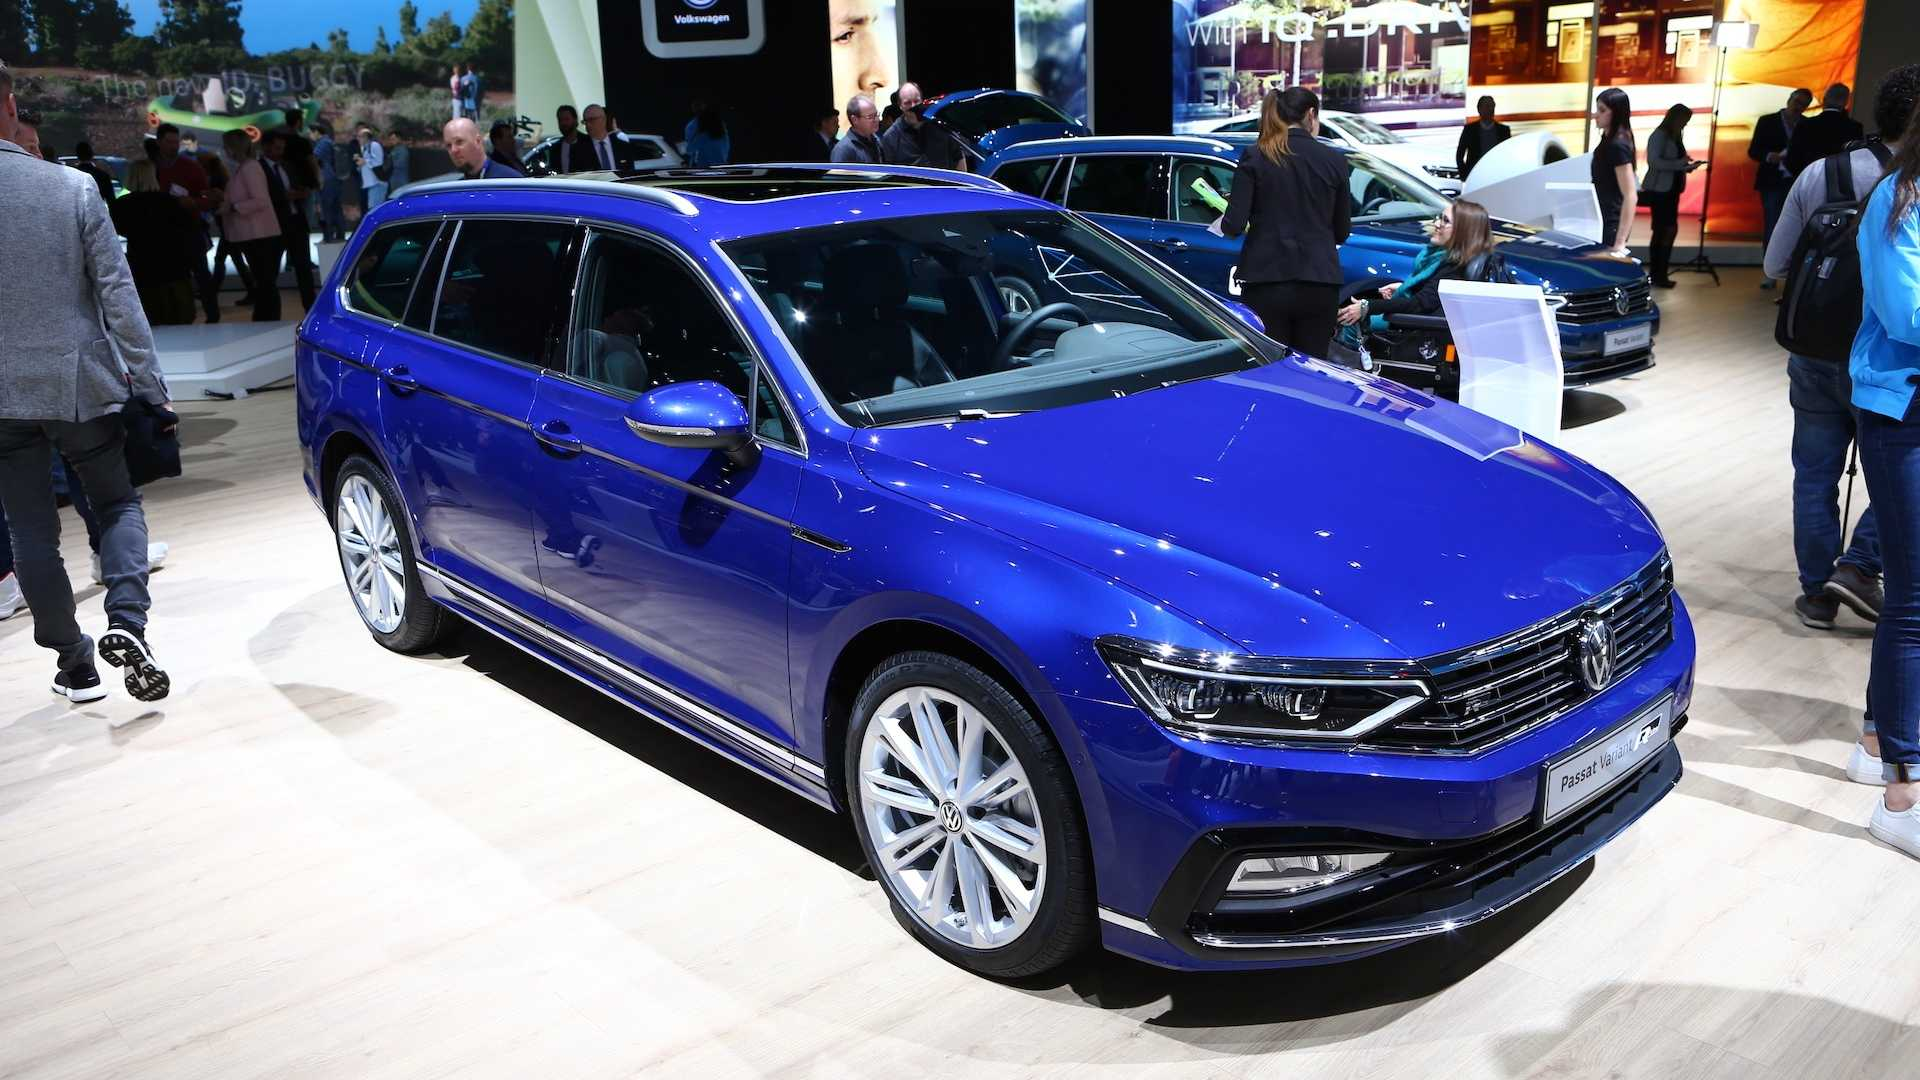 69 All New 2019 Volkswagen Passat Price